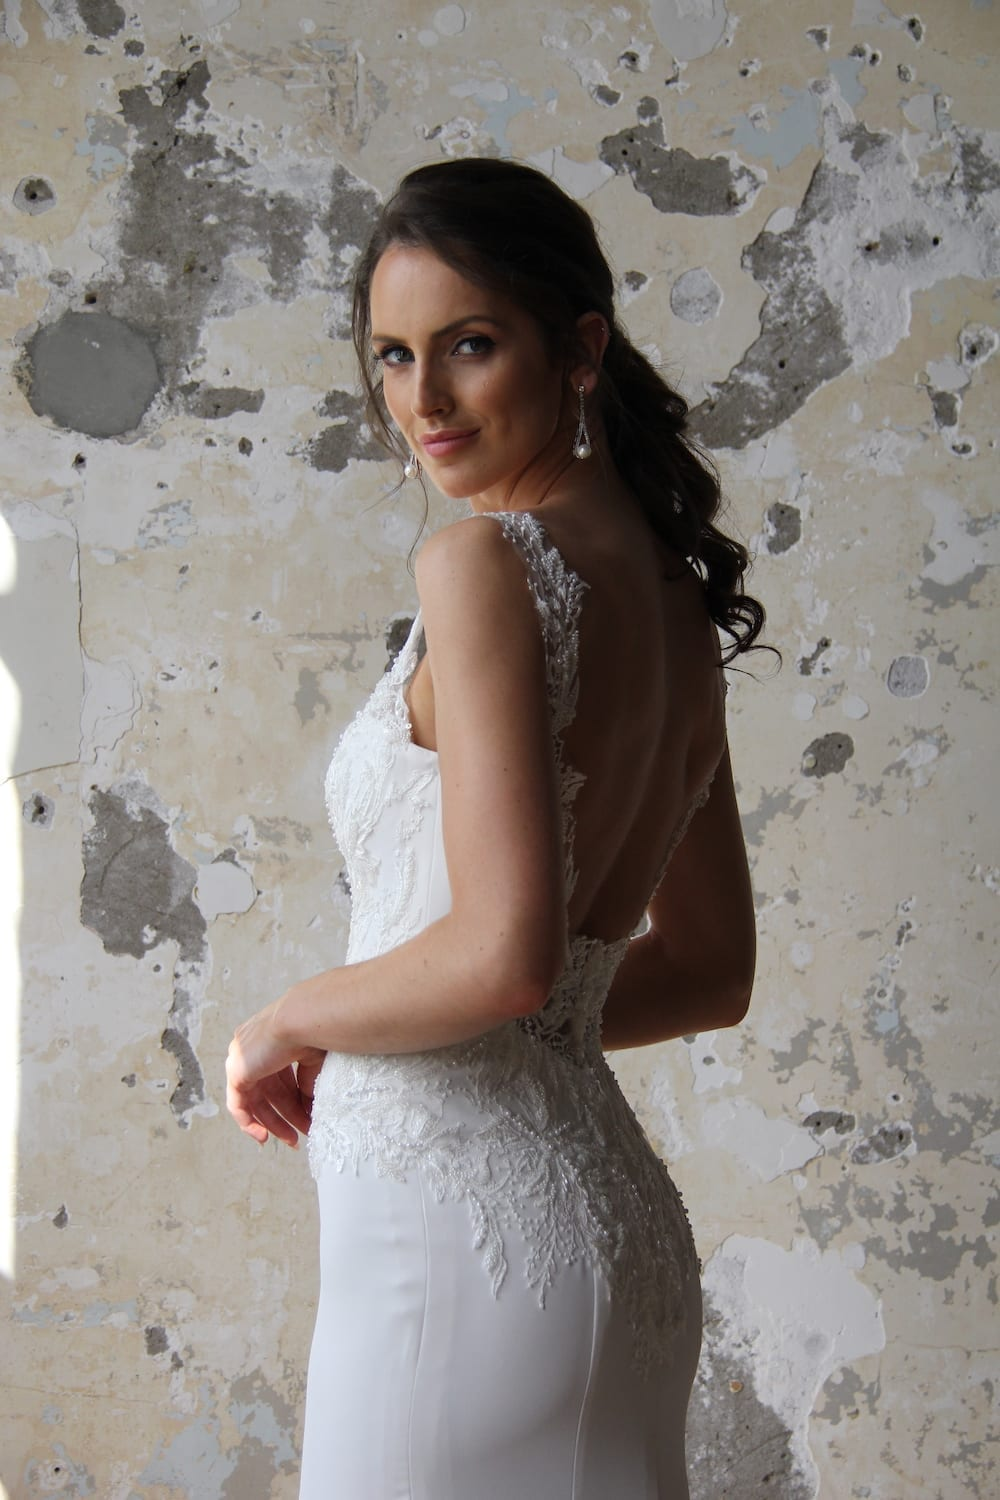 Female model wearing Vinka Design Modern Muse Wedding Dress. In chic warehouse the side detail of a gown with delicate beaded leaf lace, sheer back straps and bridal crepe skirt with train.